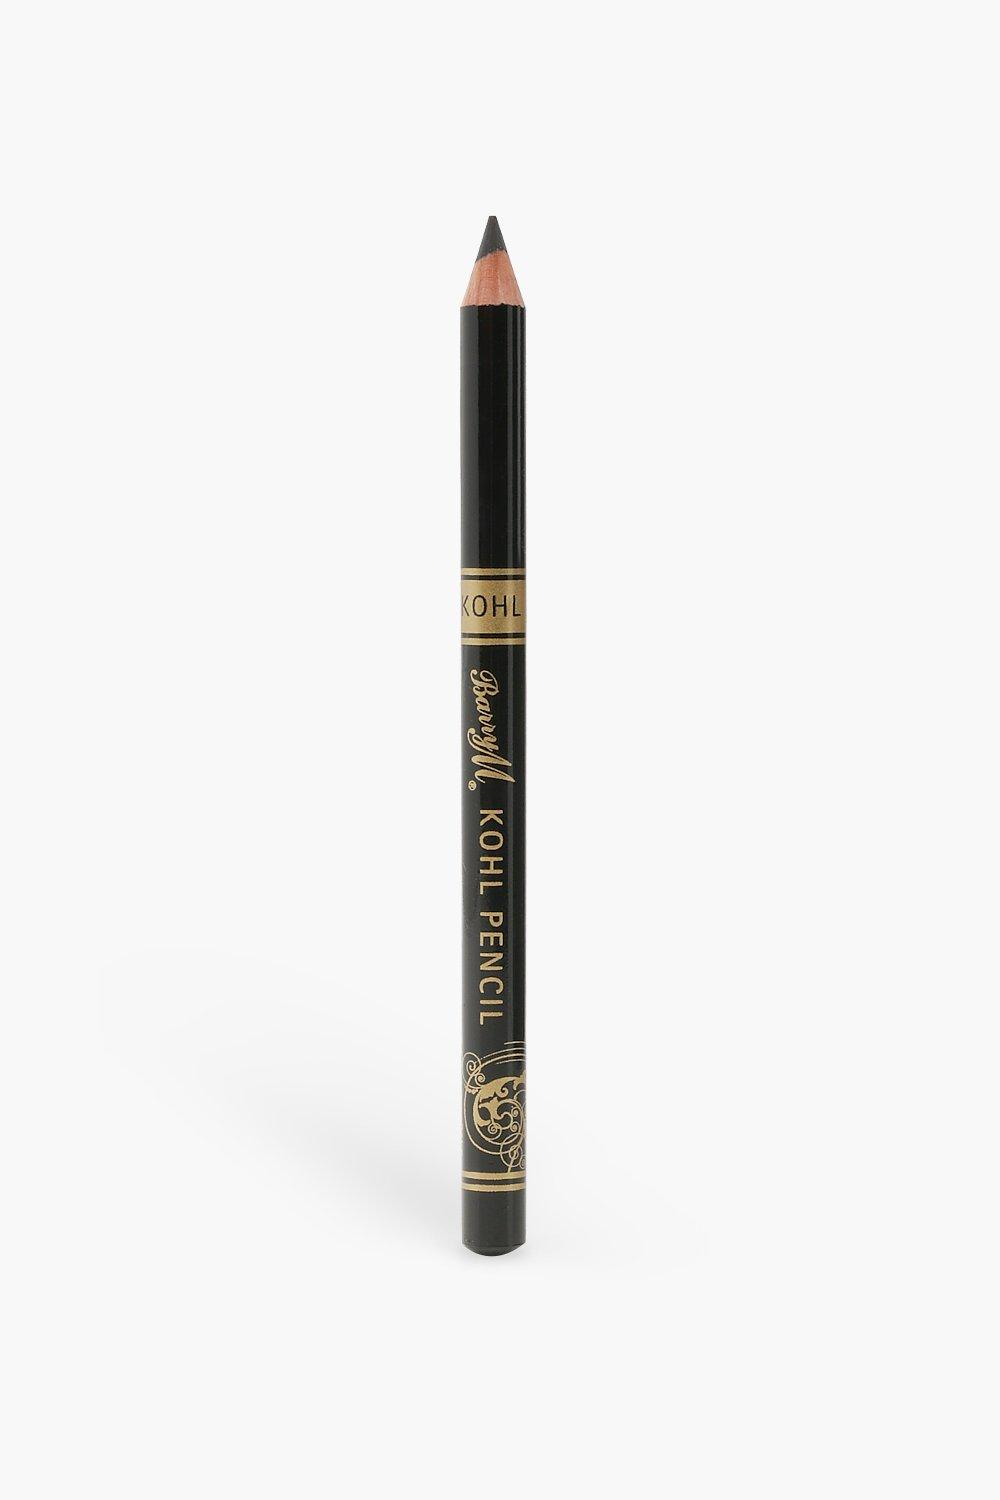 Barry M Womens Barry M Kohl Eyeliner Pencil - Black - One Size, Black